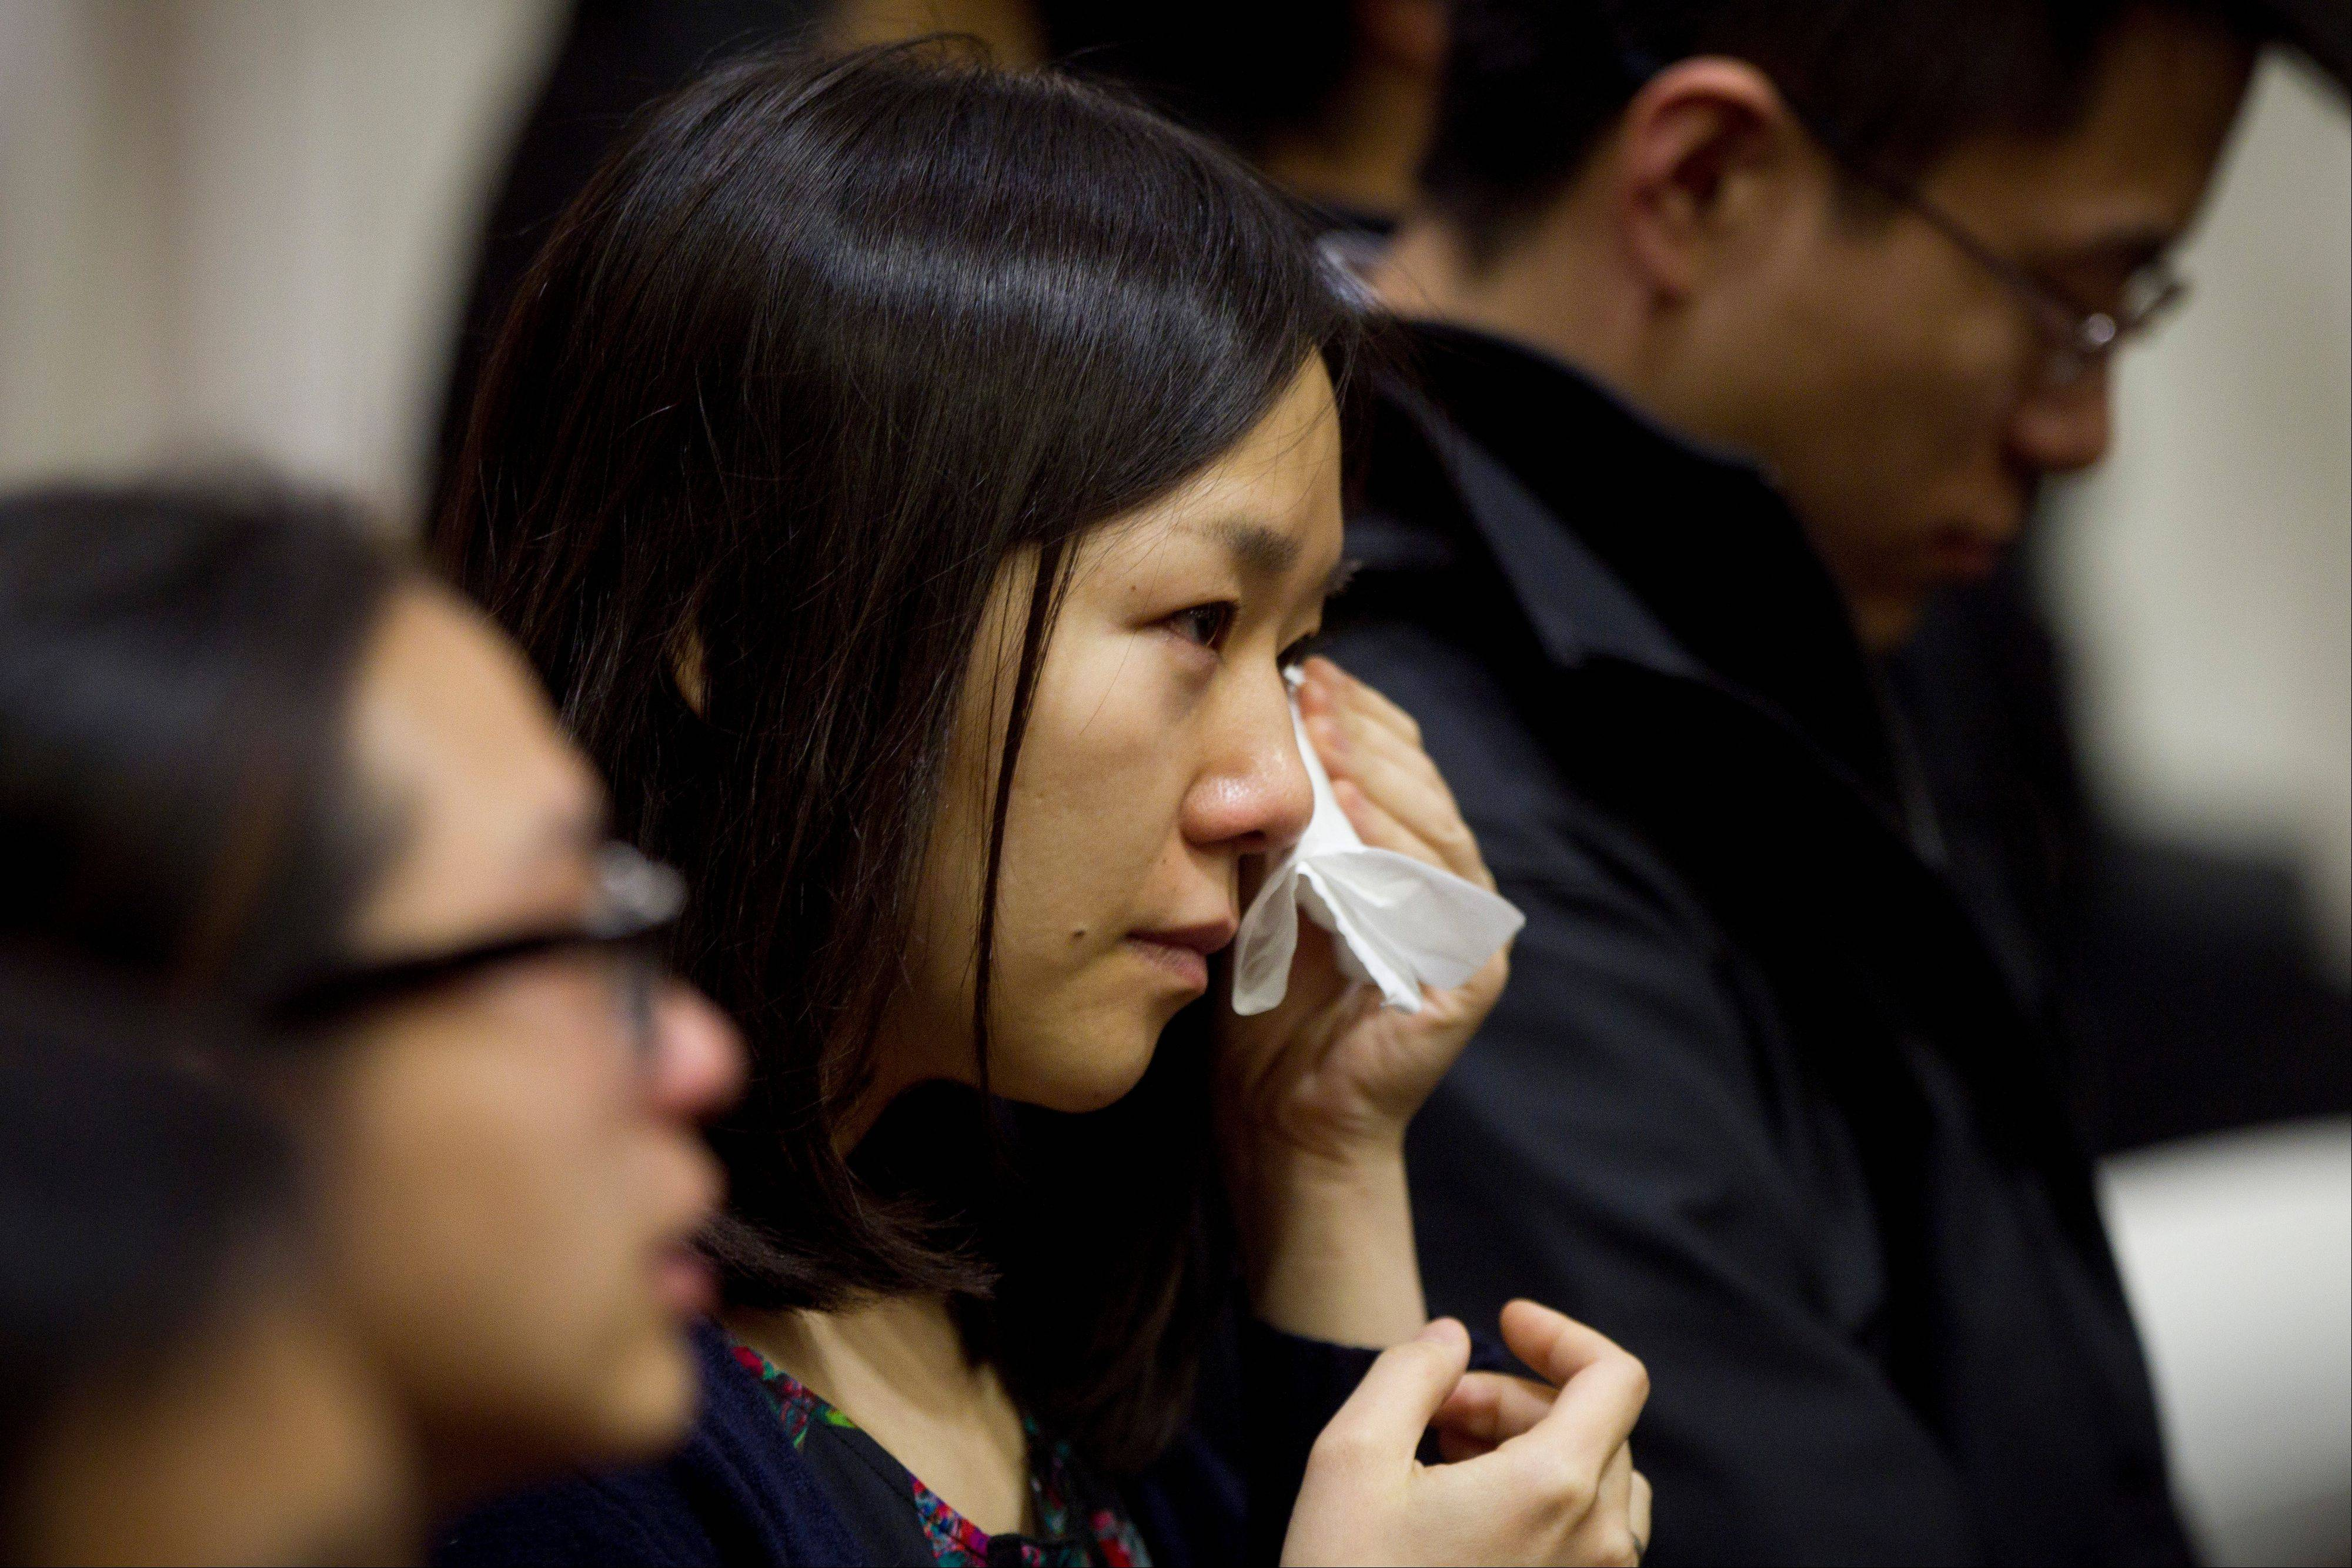 A member of the audience sheds tears during Lu Lingzi's eulogy, delivered by her father, Lu June at Metcalf Hall in Boston University's George Sherman Student Union on Monday, April 22, 2013. Lingzi was killed in the Boston Marathon bombings.